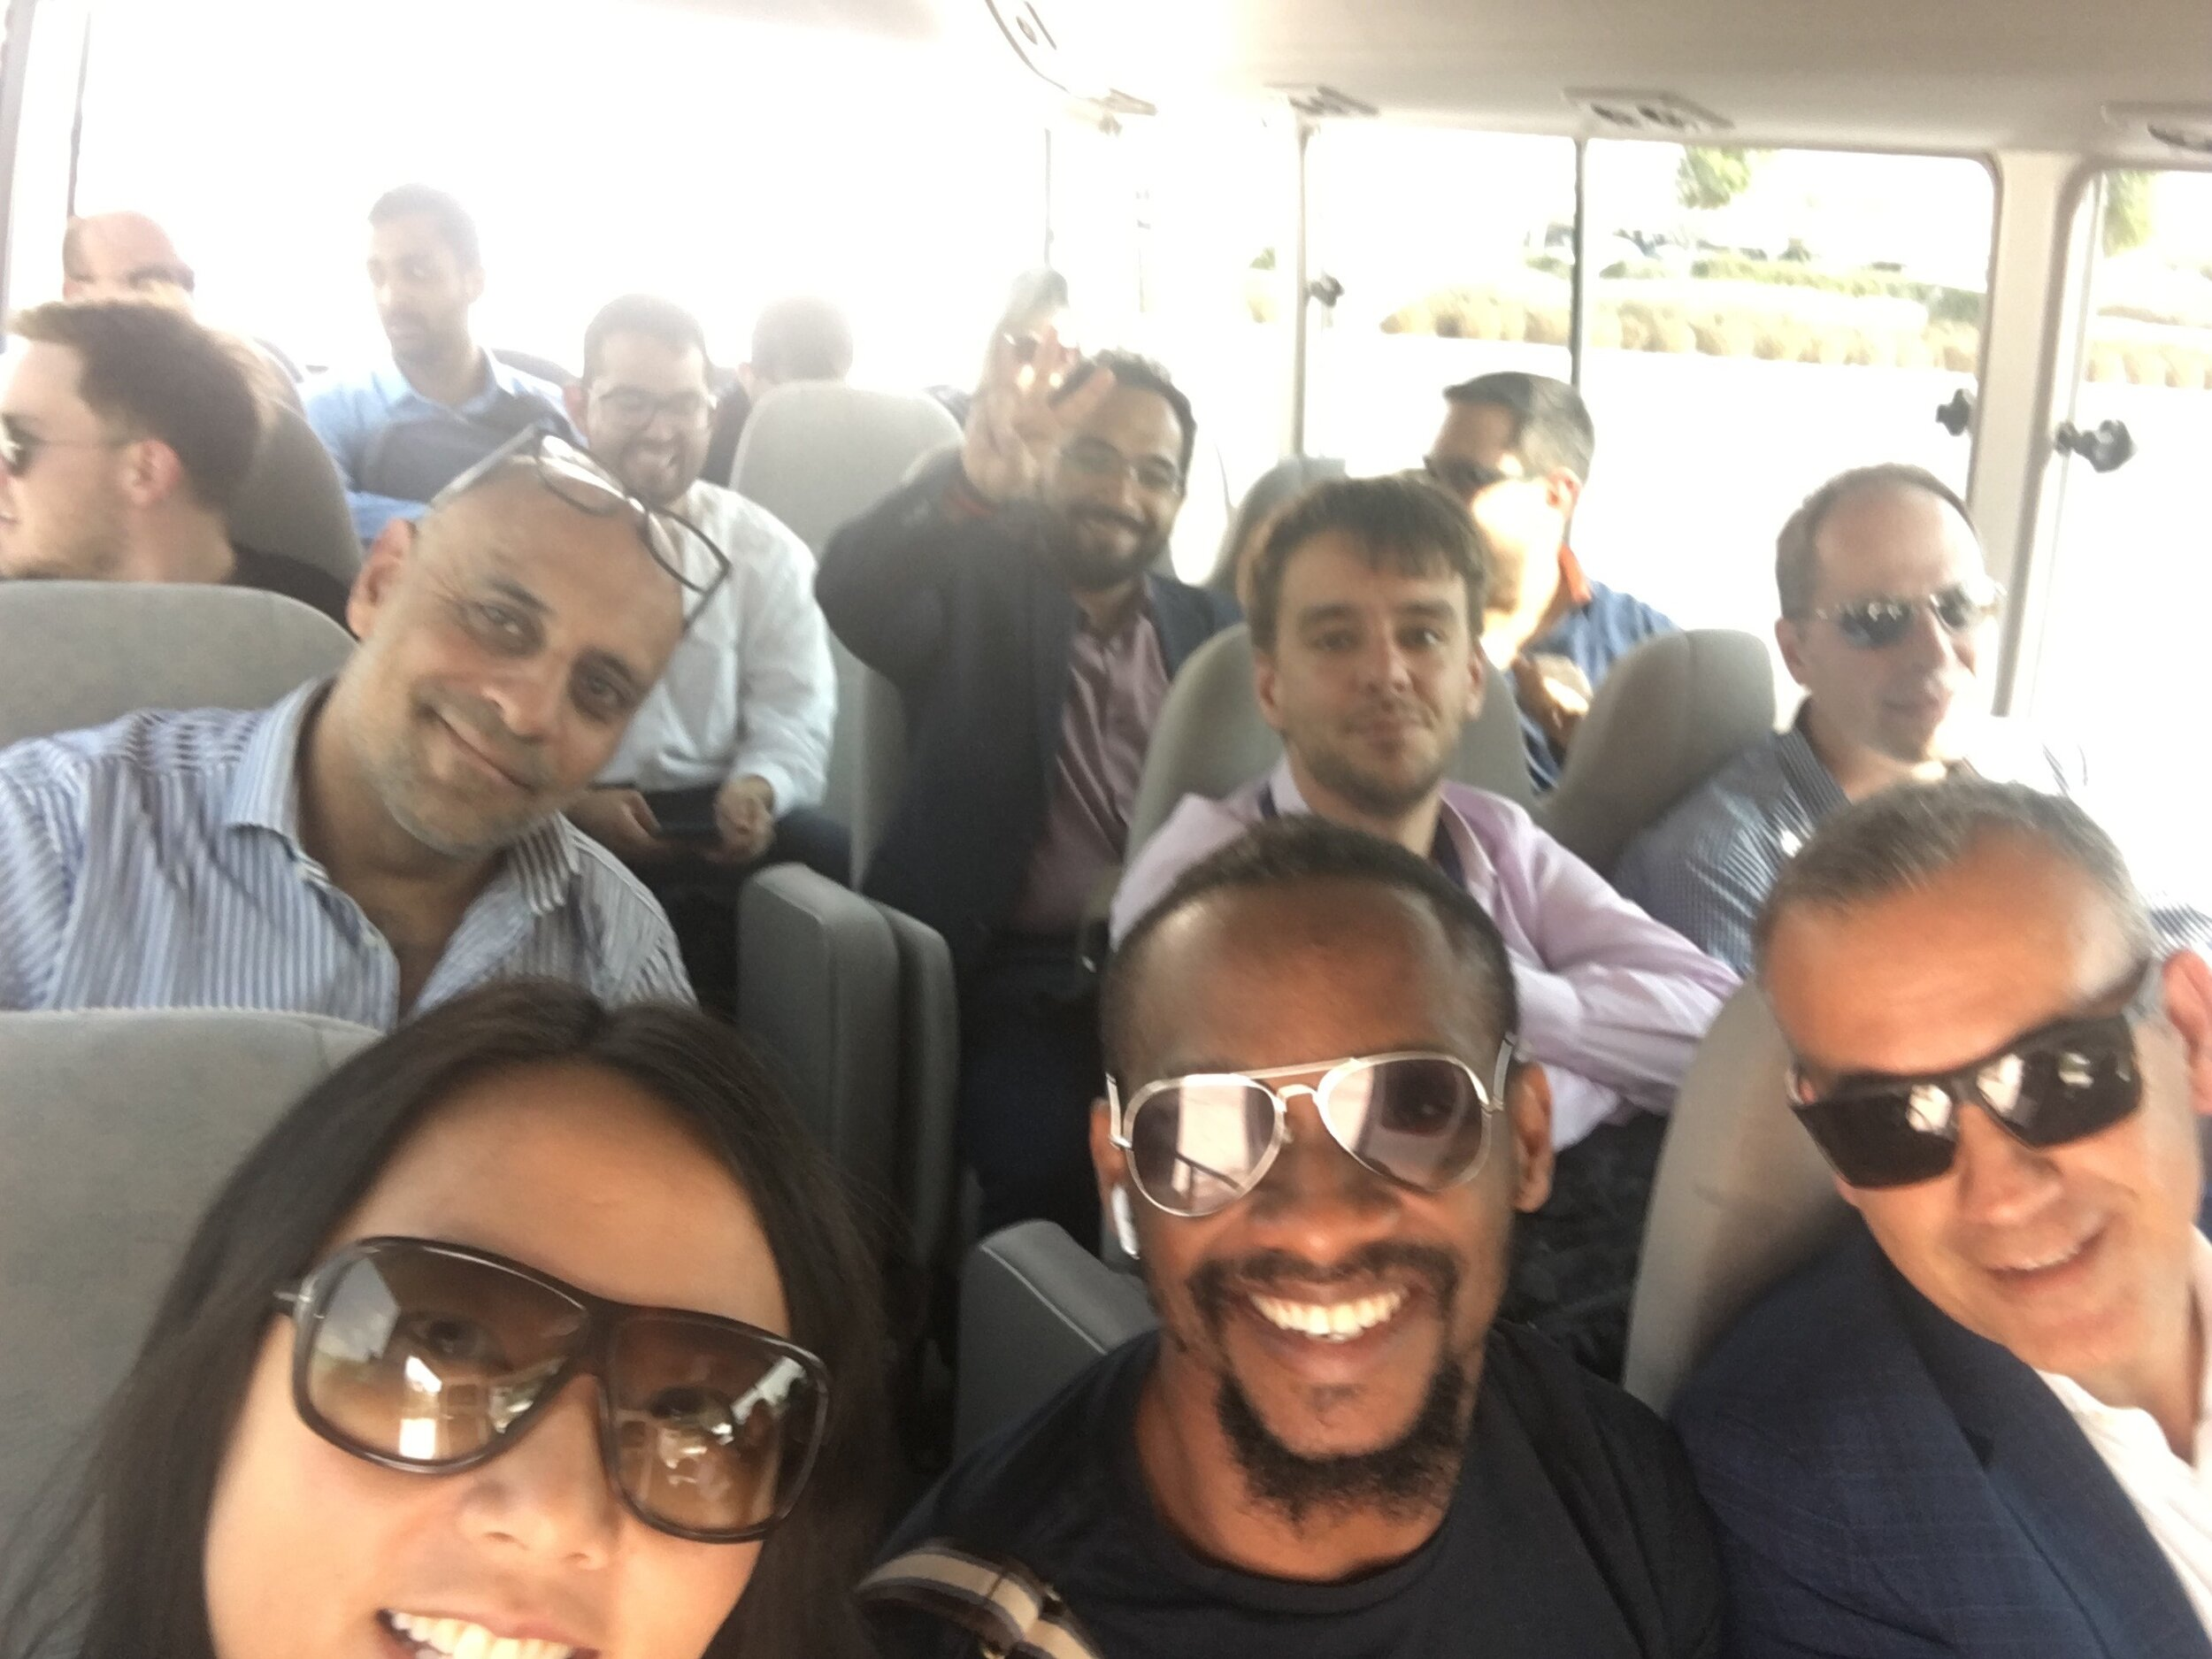 The Startup Bus AKA the Money Asking Bus. Getting ride from HBKU to QSTP to present our pitch.